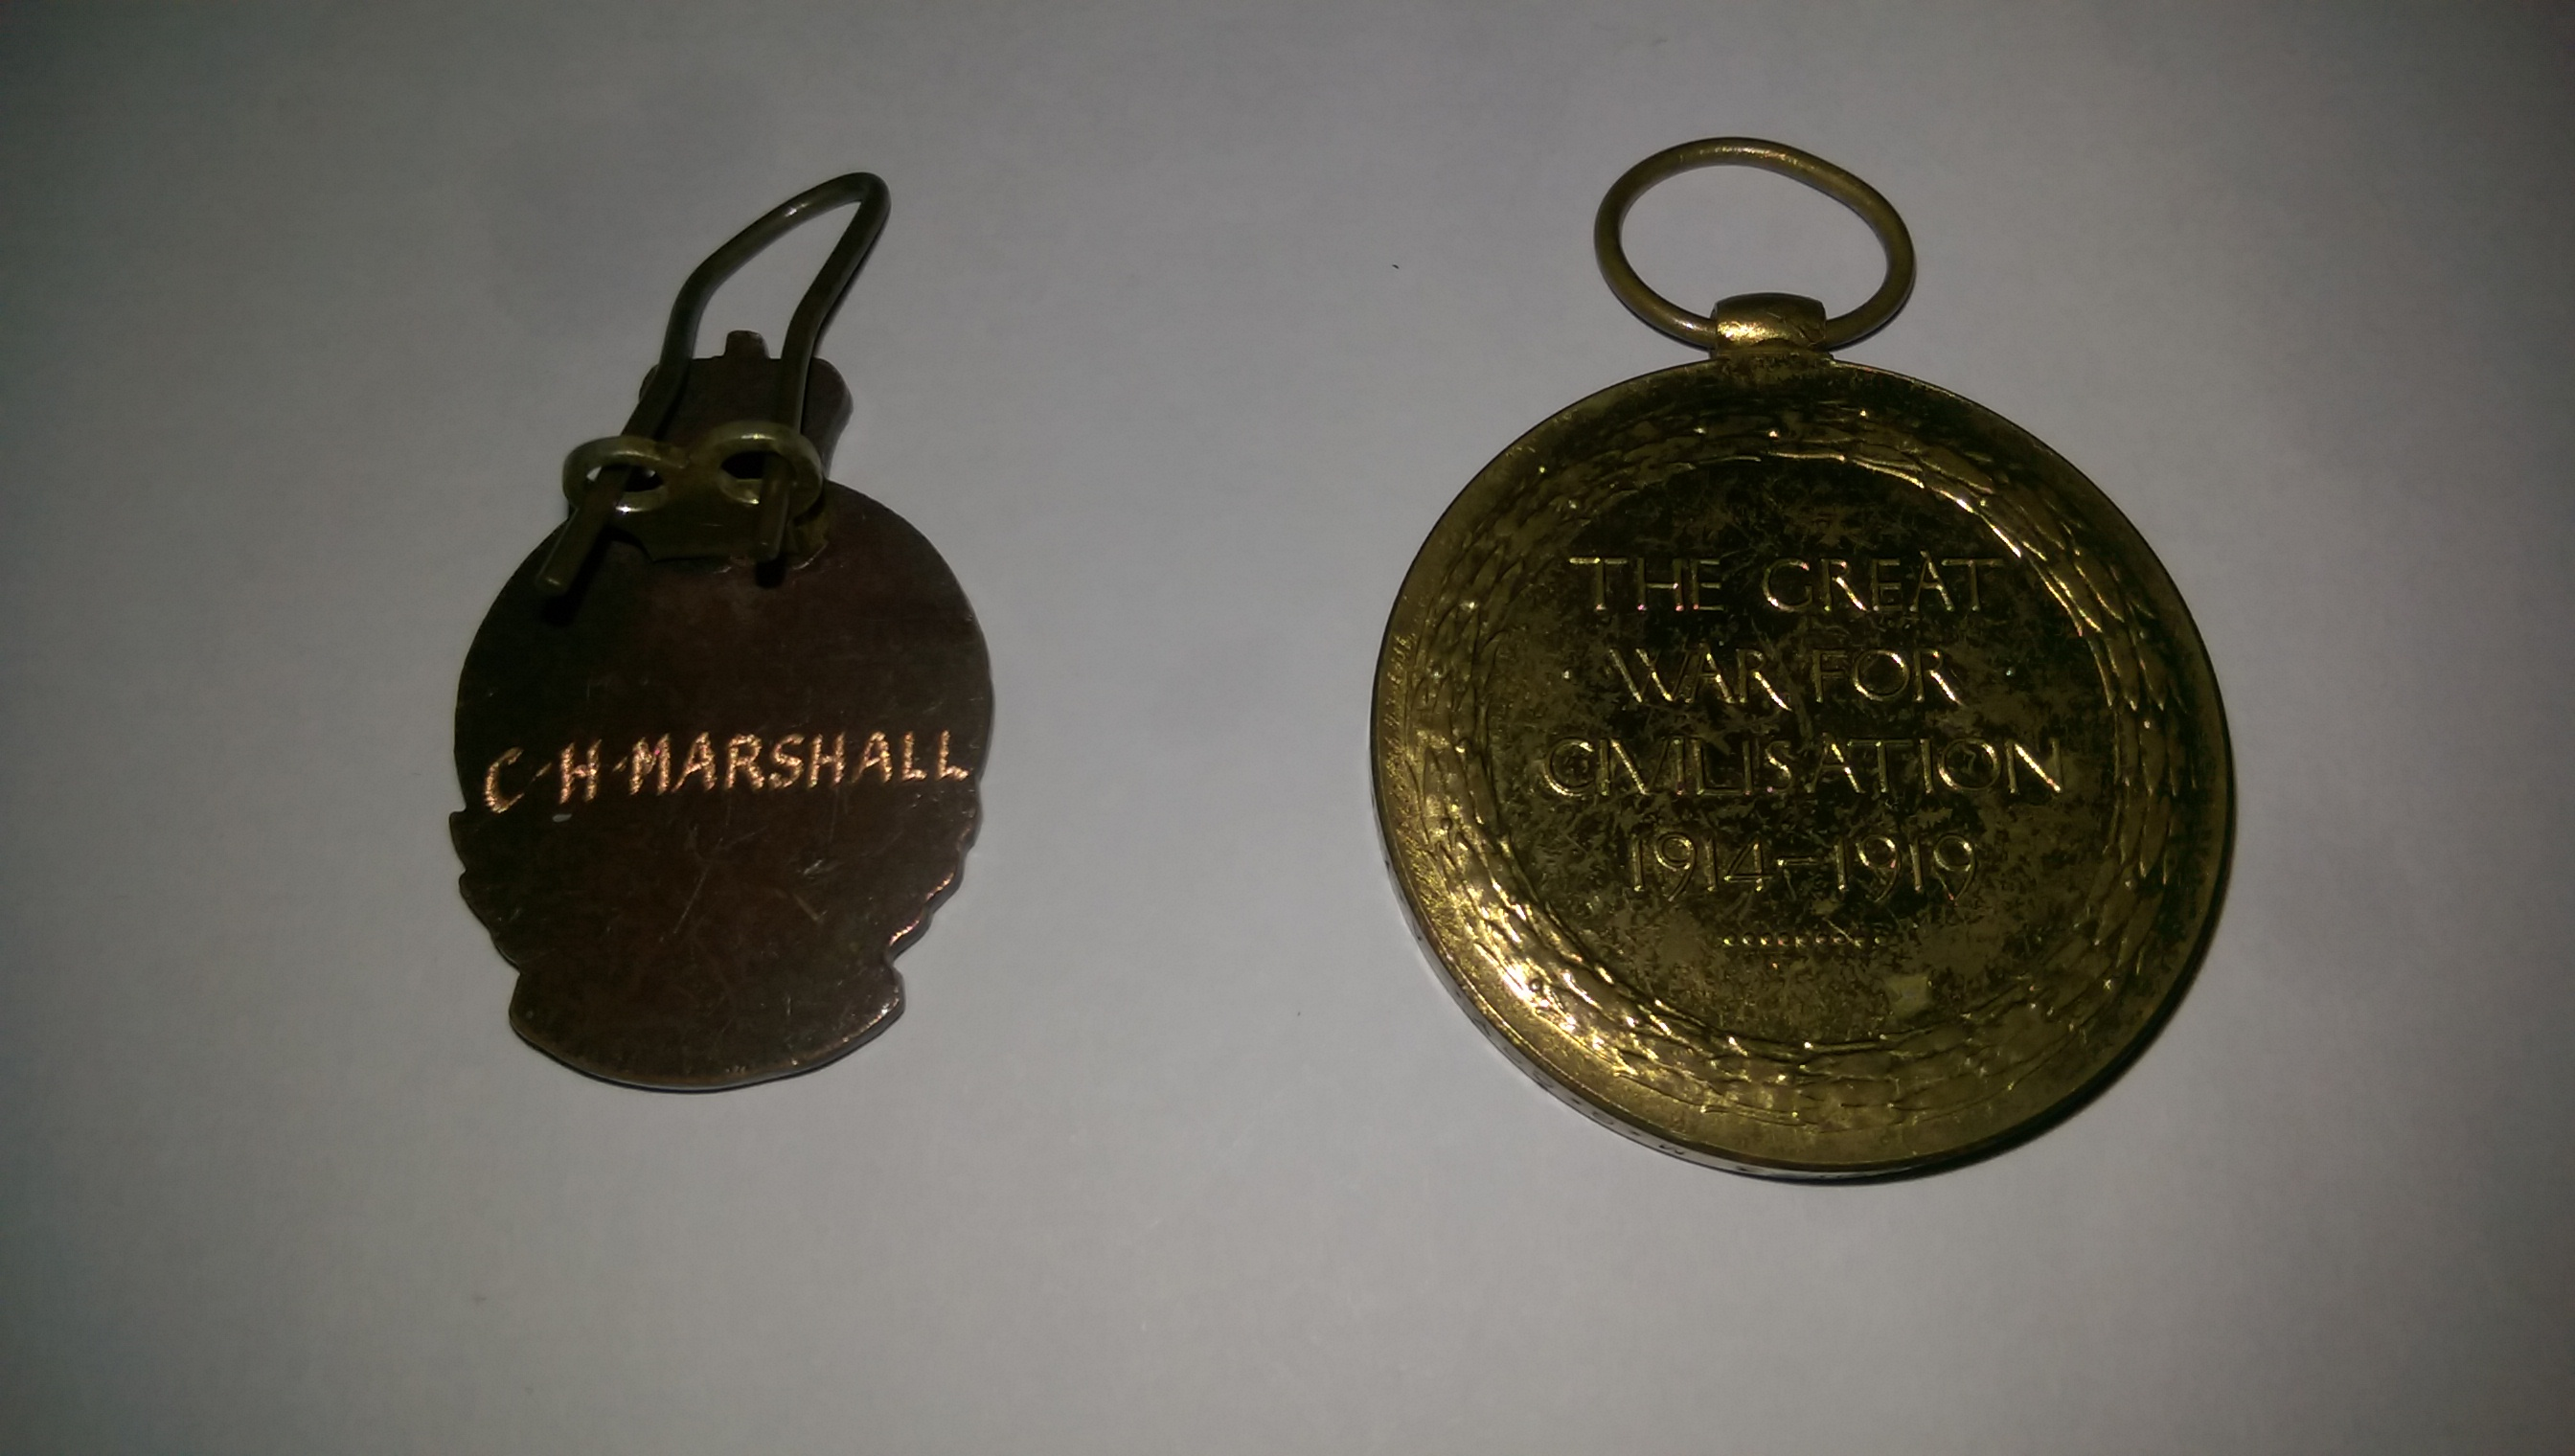 CLOSE UP OF BACK OF GALLIPOLI &WW1 ANGLE MEDALS PRESENTED TO CLEMENTINA MARSHALL